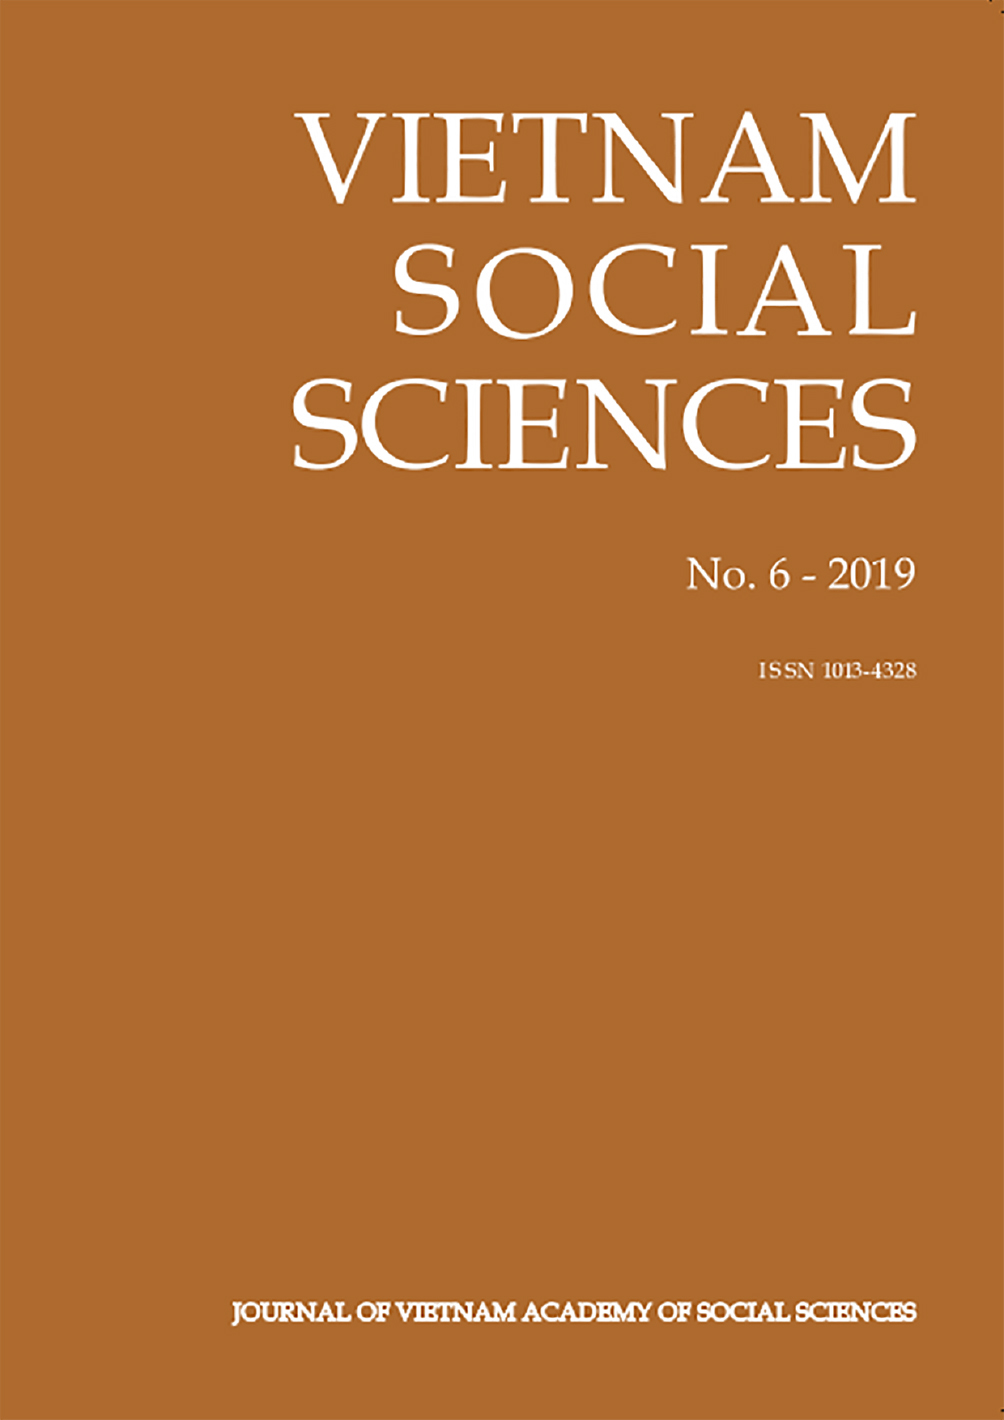 Vietnam Social Sciences. No. 6 - 2019